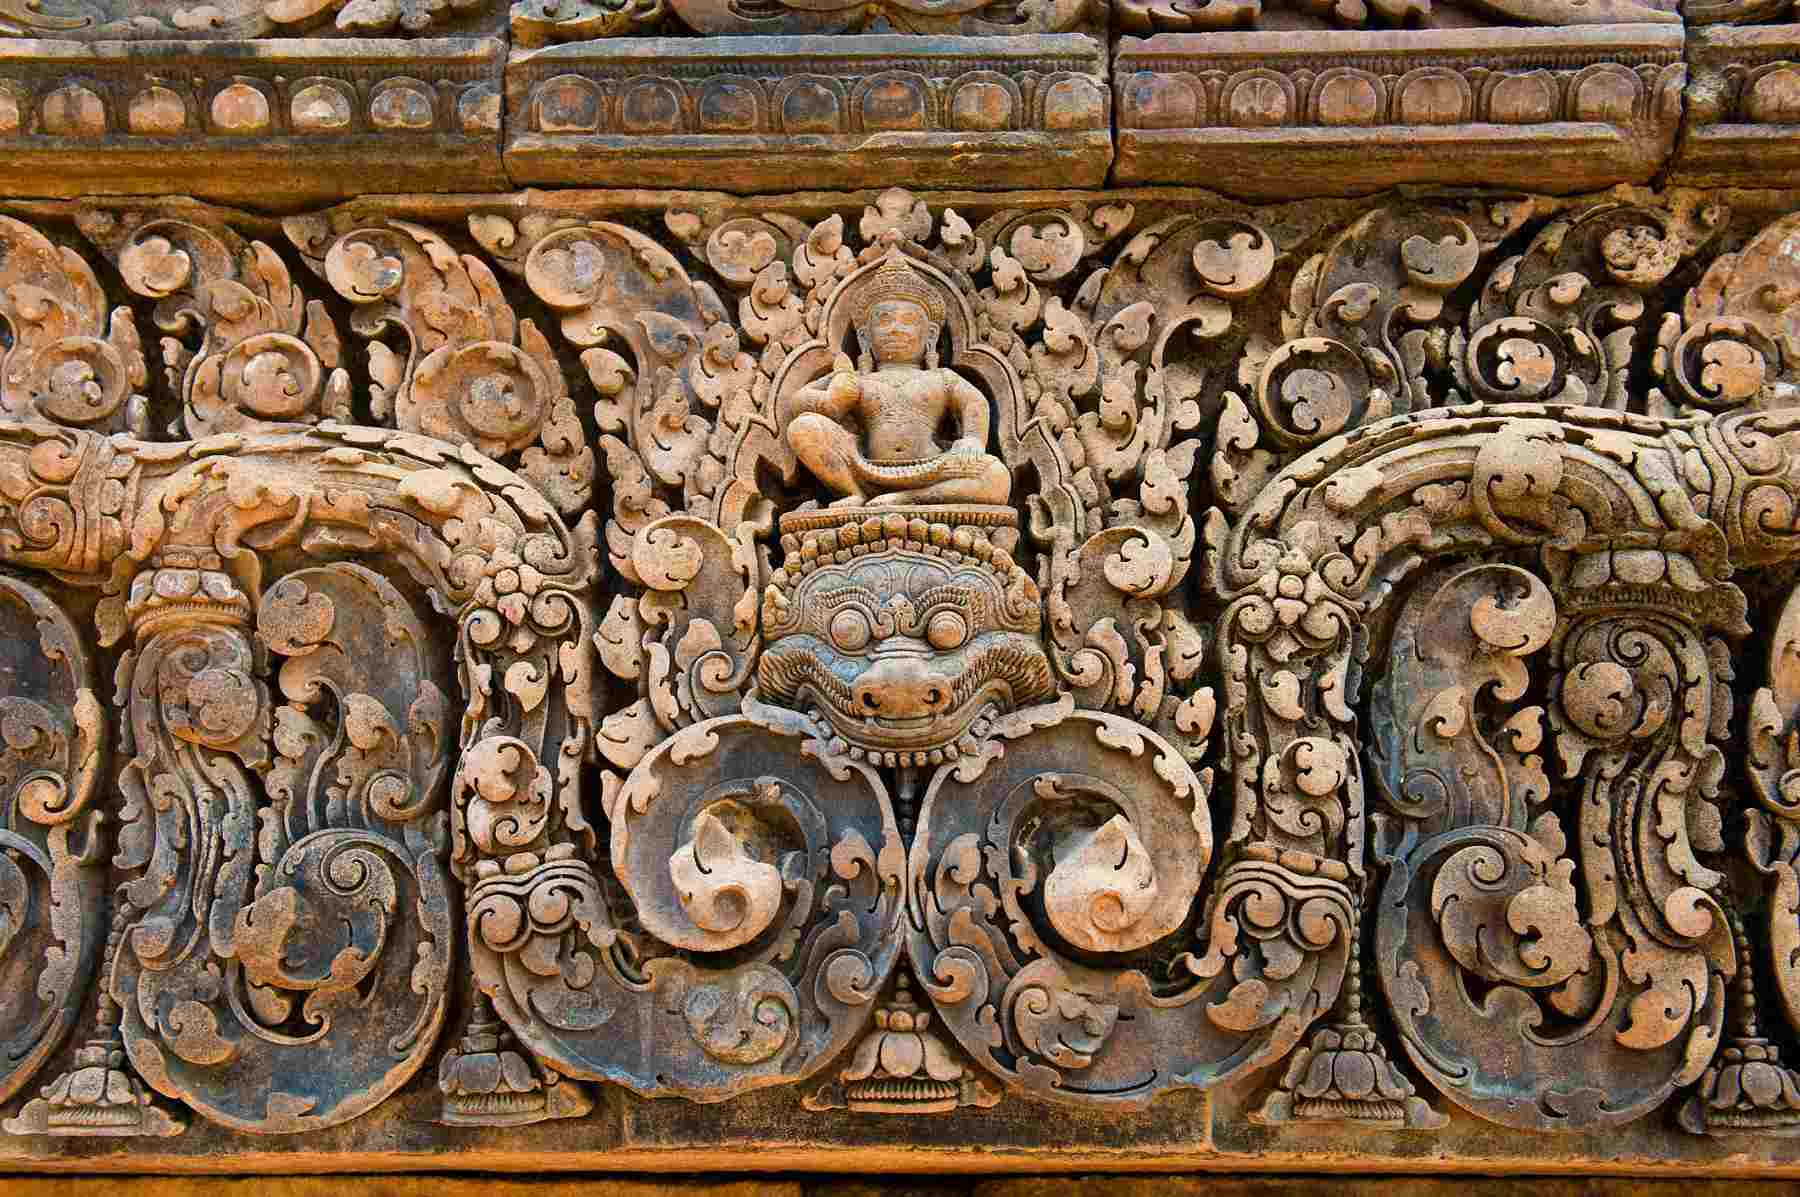 Carving on Banteay Srei